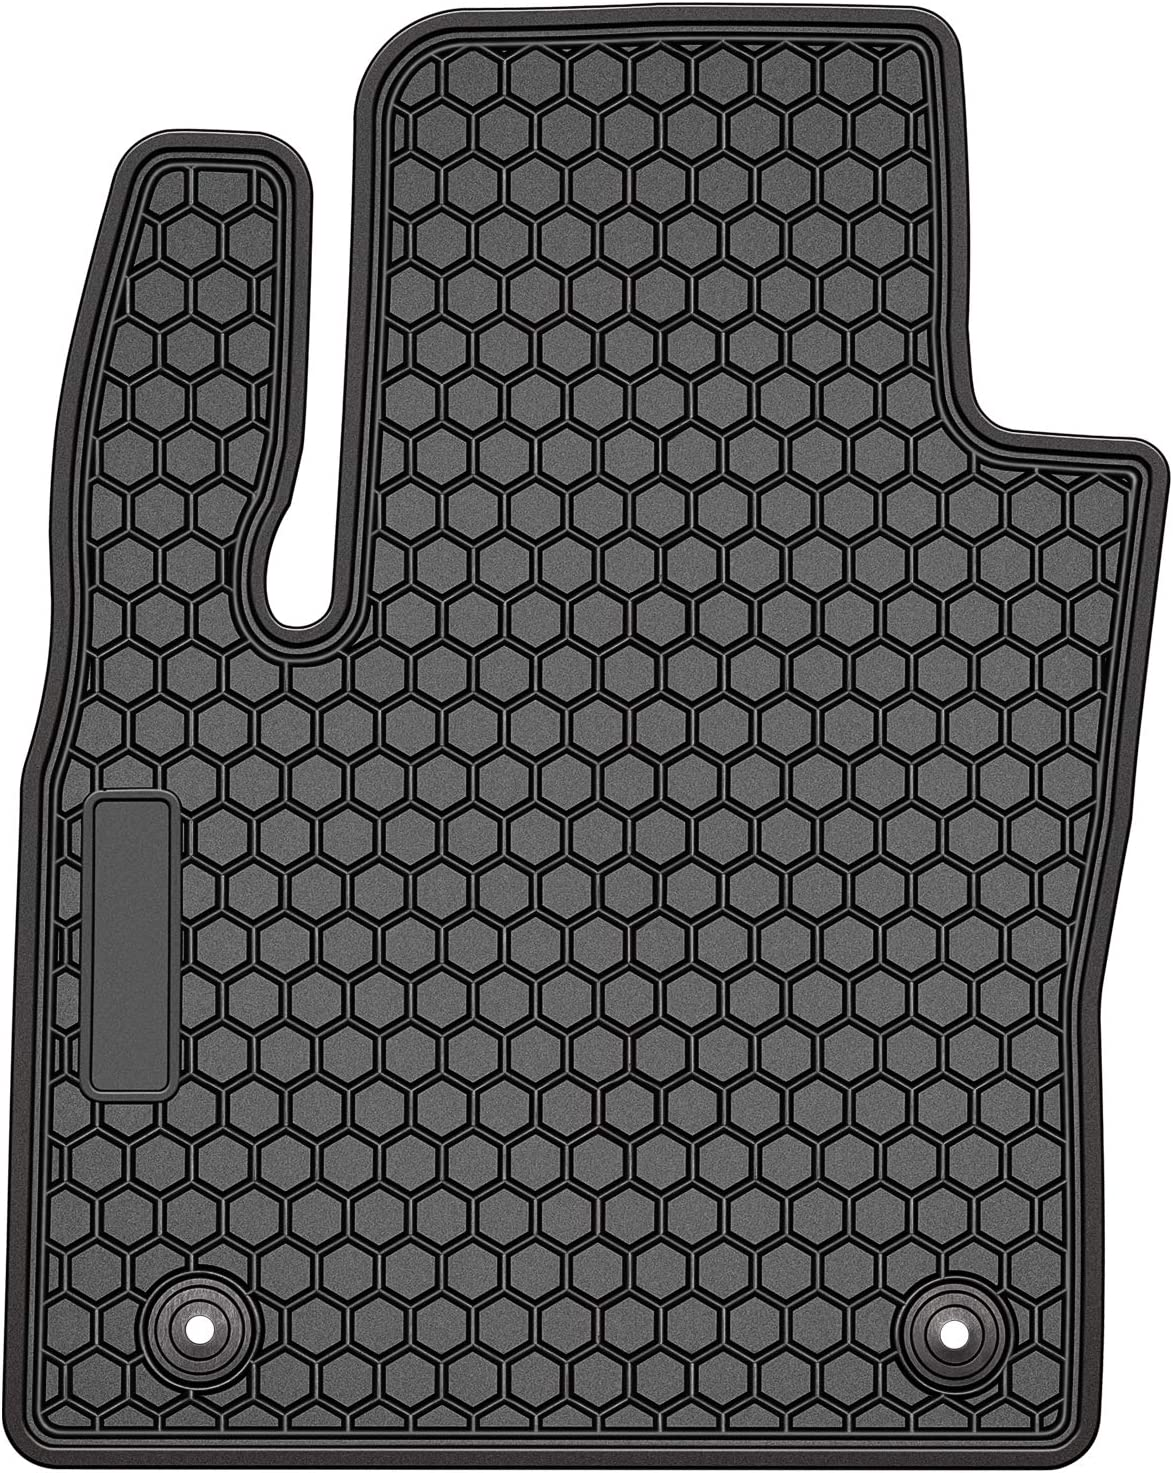 Pack of 3 Bonbo Floor Liner Mats for Ford Fusion 2013-2019,Custom Fit,Front and Rear Seat Floor Mats,All-Weather Guard,Heavy Duty Rubber,Odorless